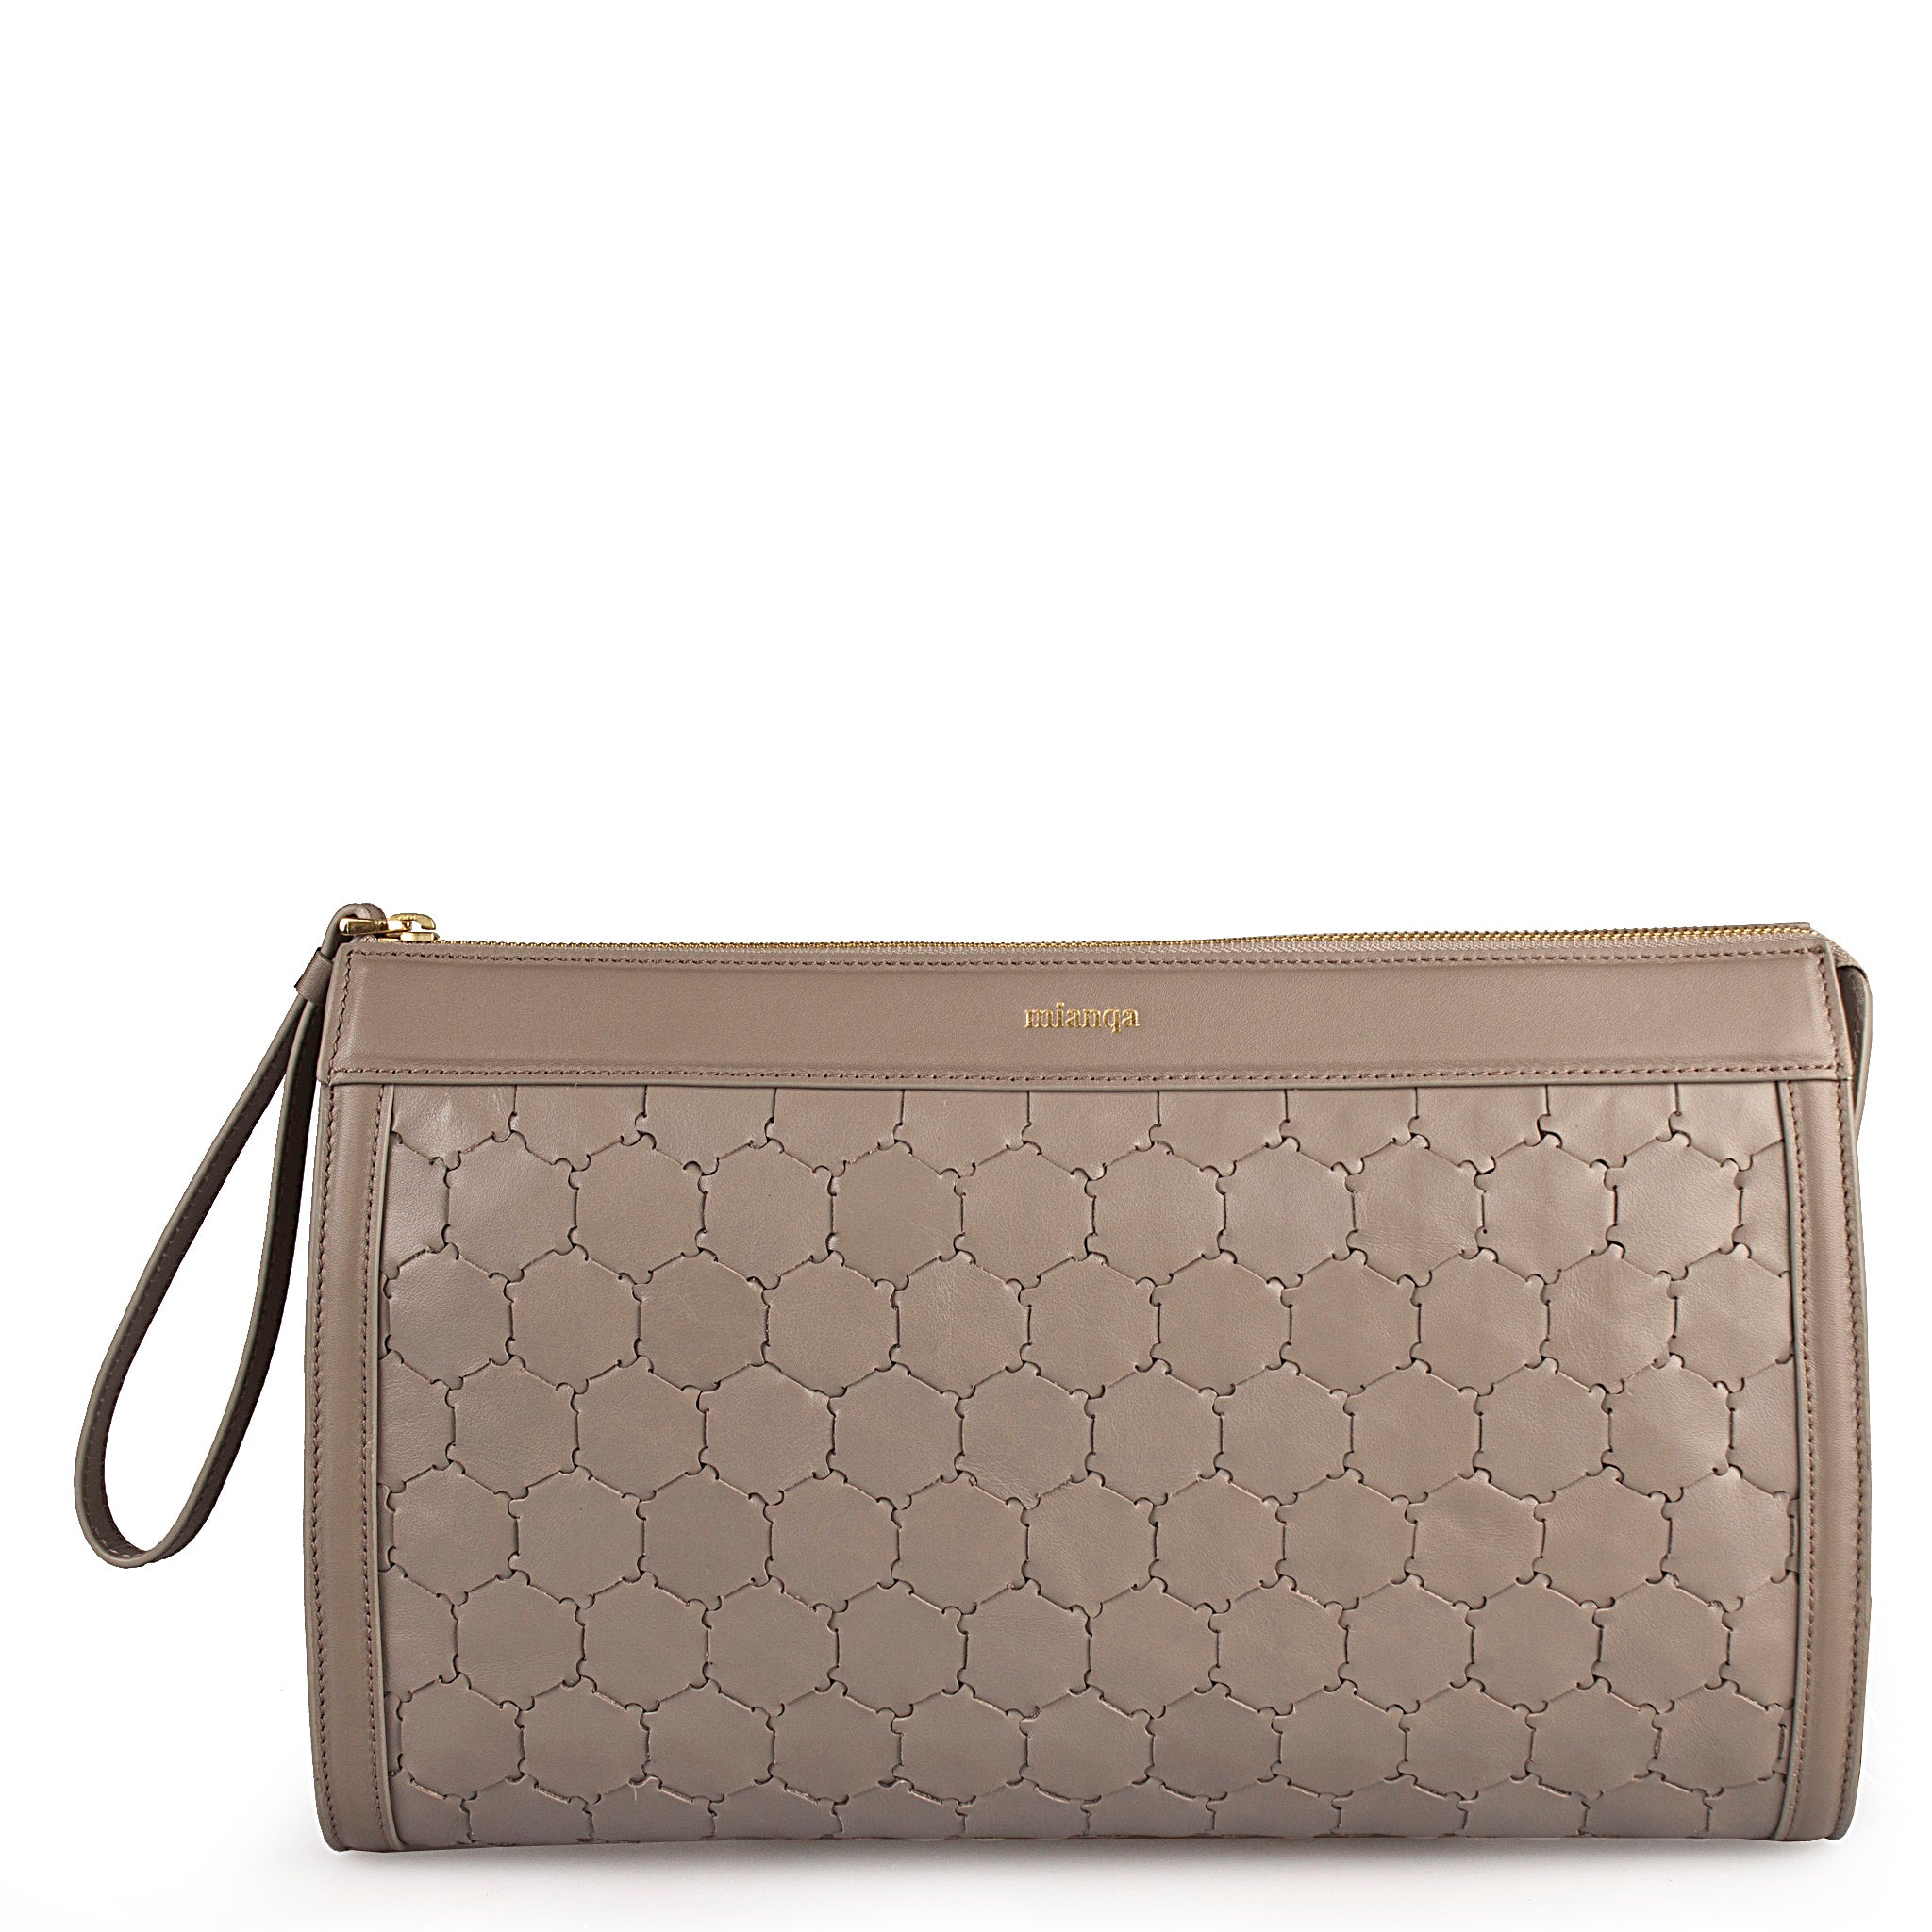 handwoven grey leather luxury clutch with zipper